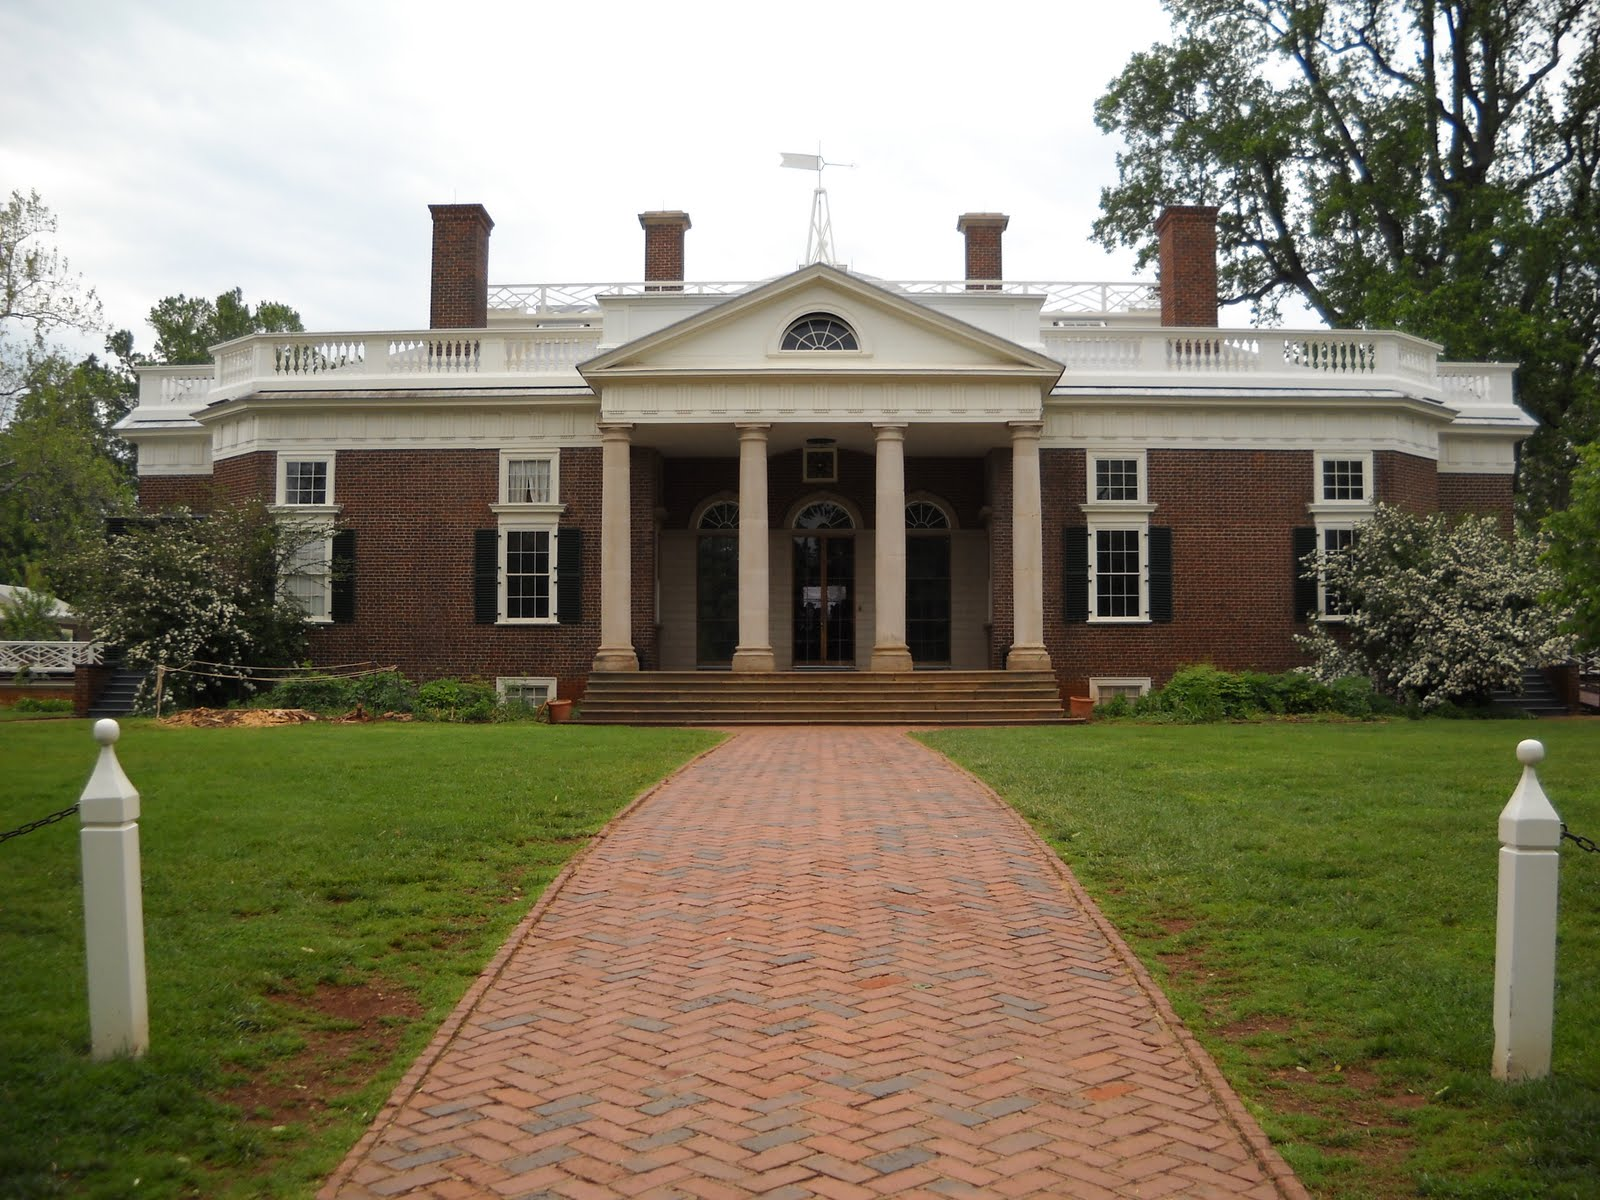 Greg sebourn thomas jefferson 39 s monticello for Thomas jefferson house monticello